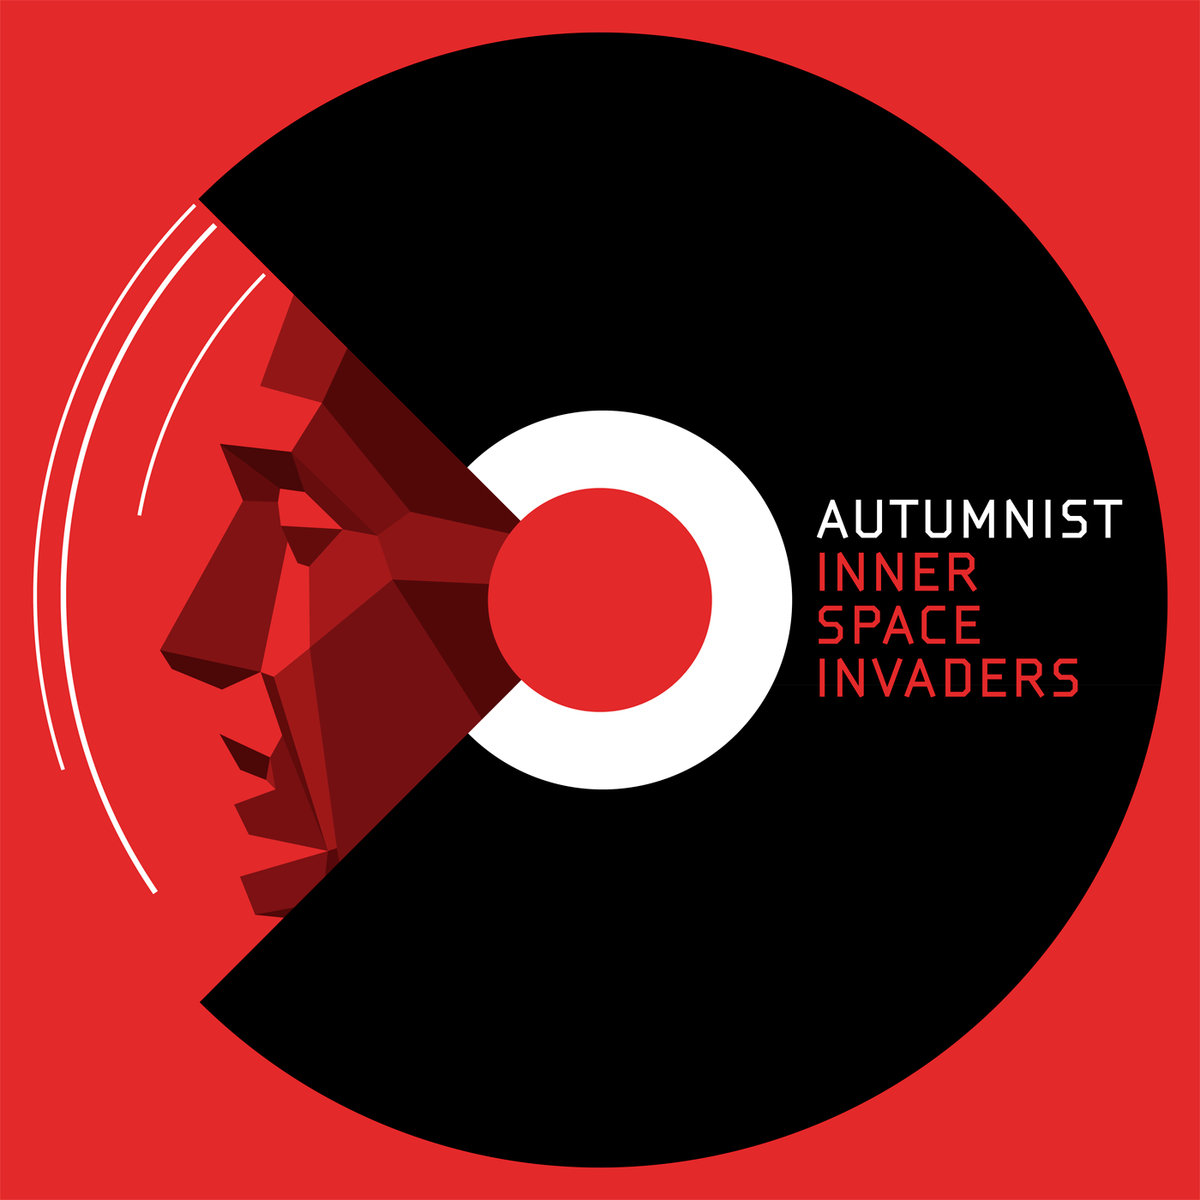 Autumnist - Inner Space Invaders (single)